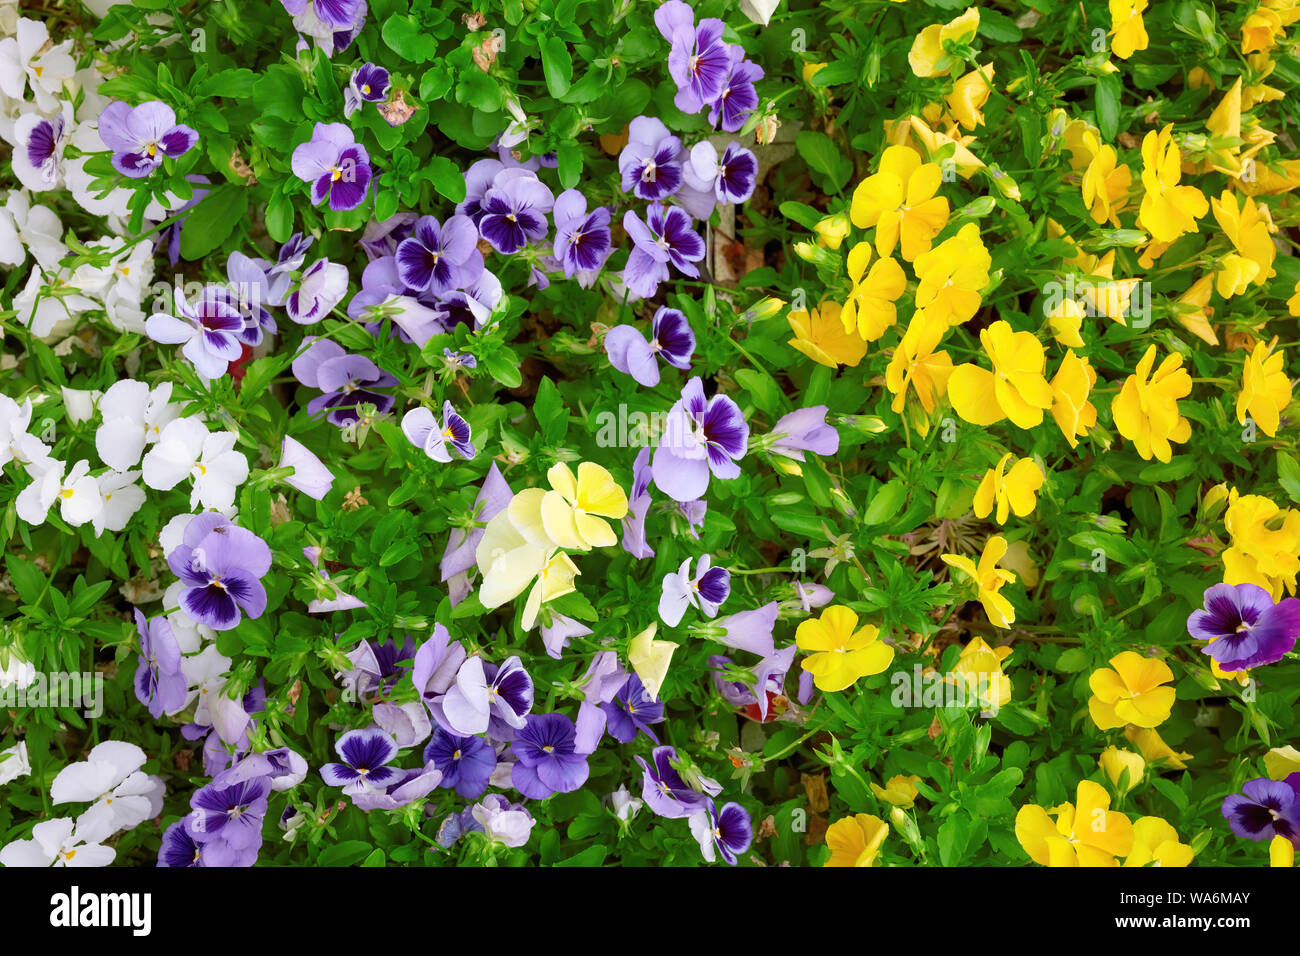 Colorful violet flowers in a garden. Close up overhead view. Stock Photo